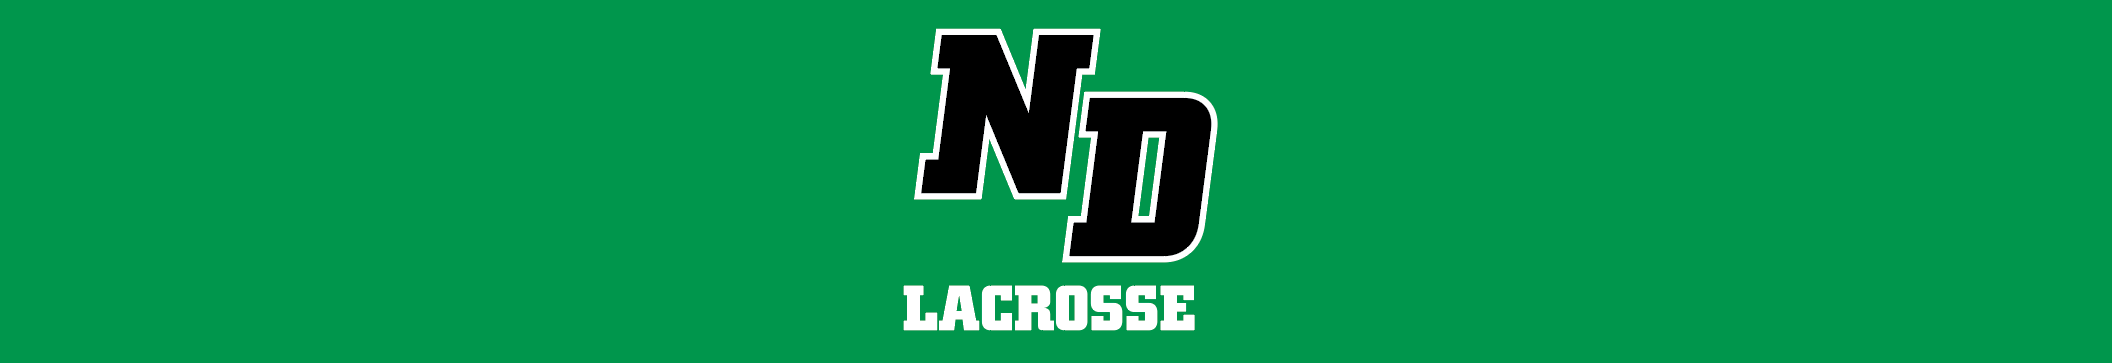 ND North Dakota Lacrosse